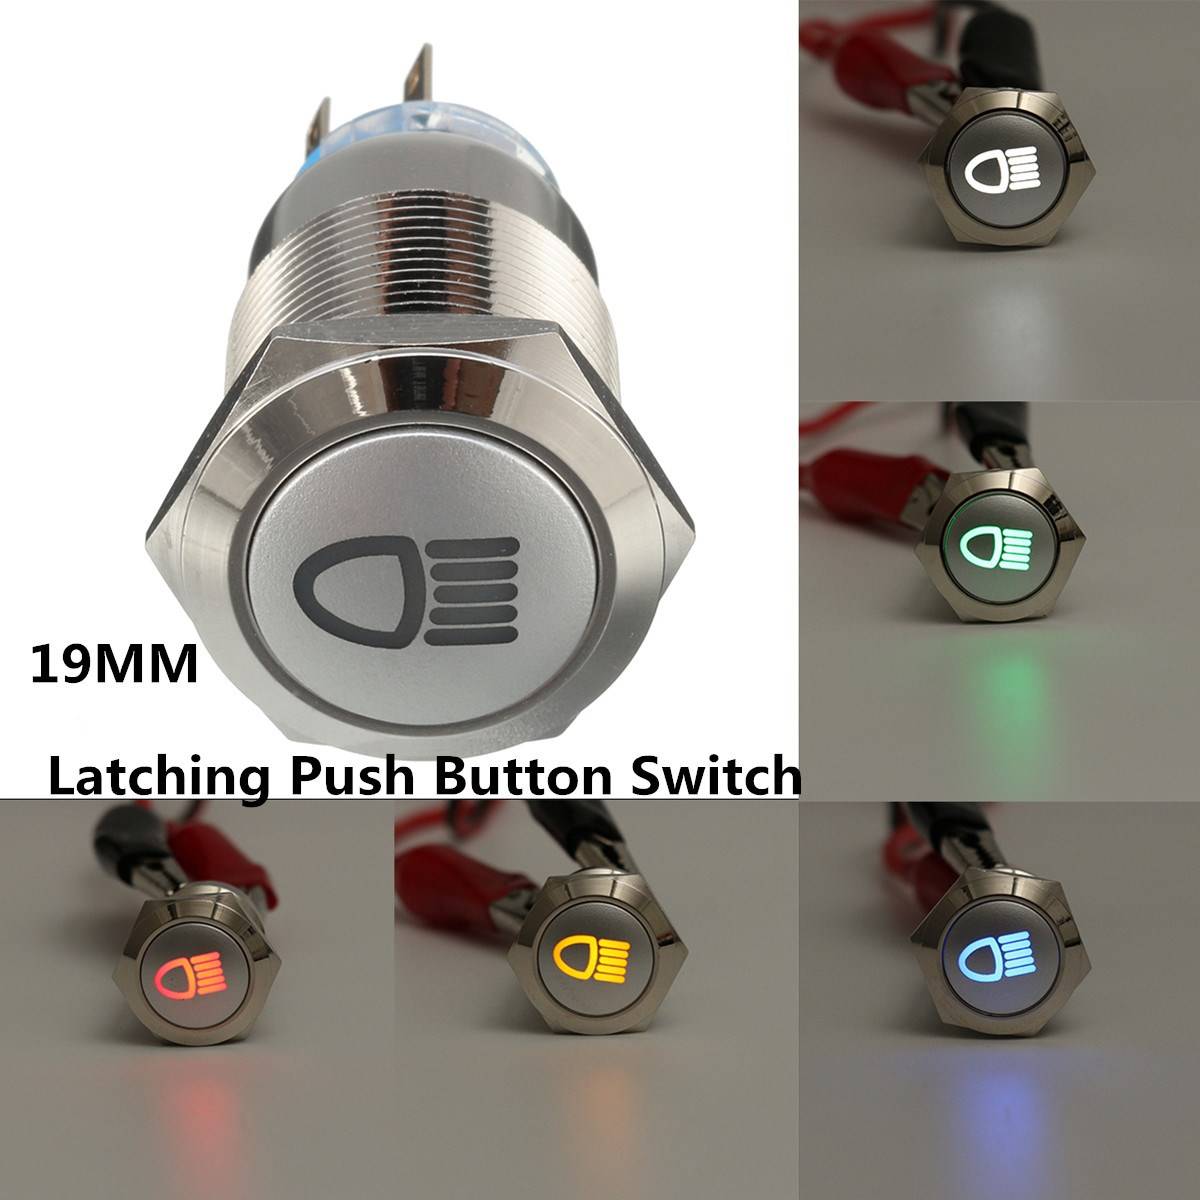 10X self-lockin 16MM Latching push button switch with RED LED lighting 4Pin 3A